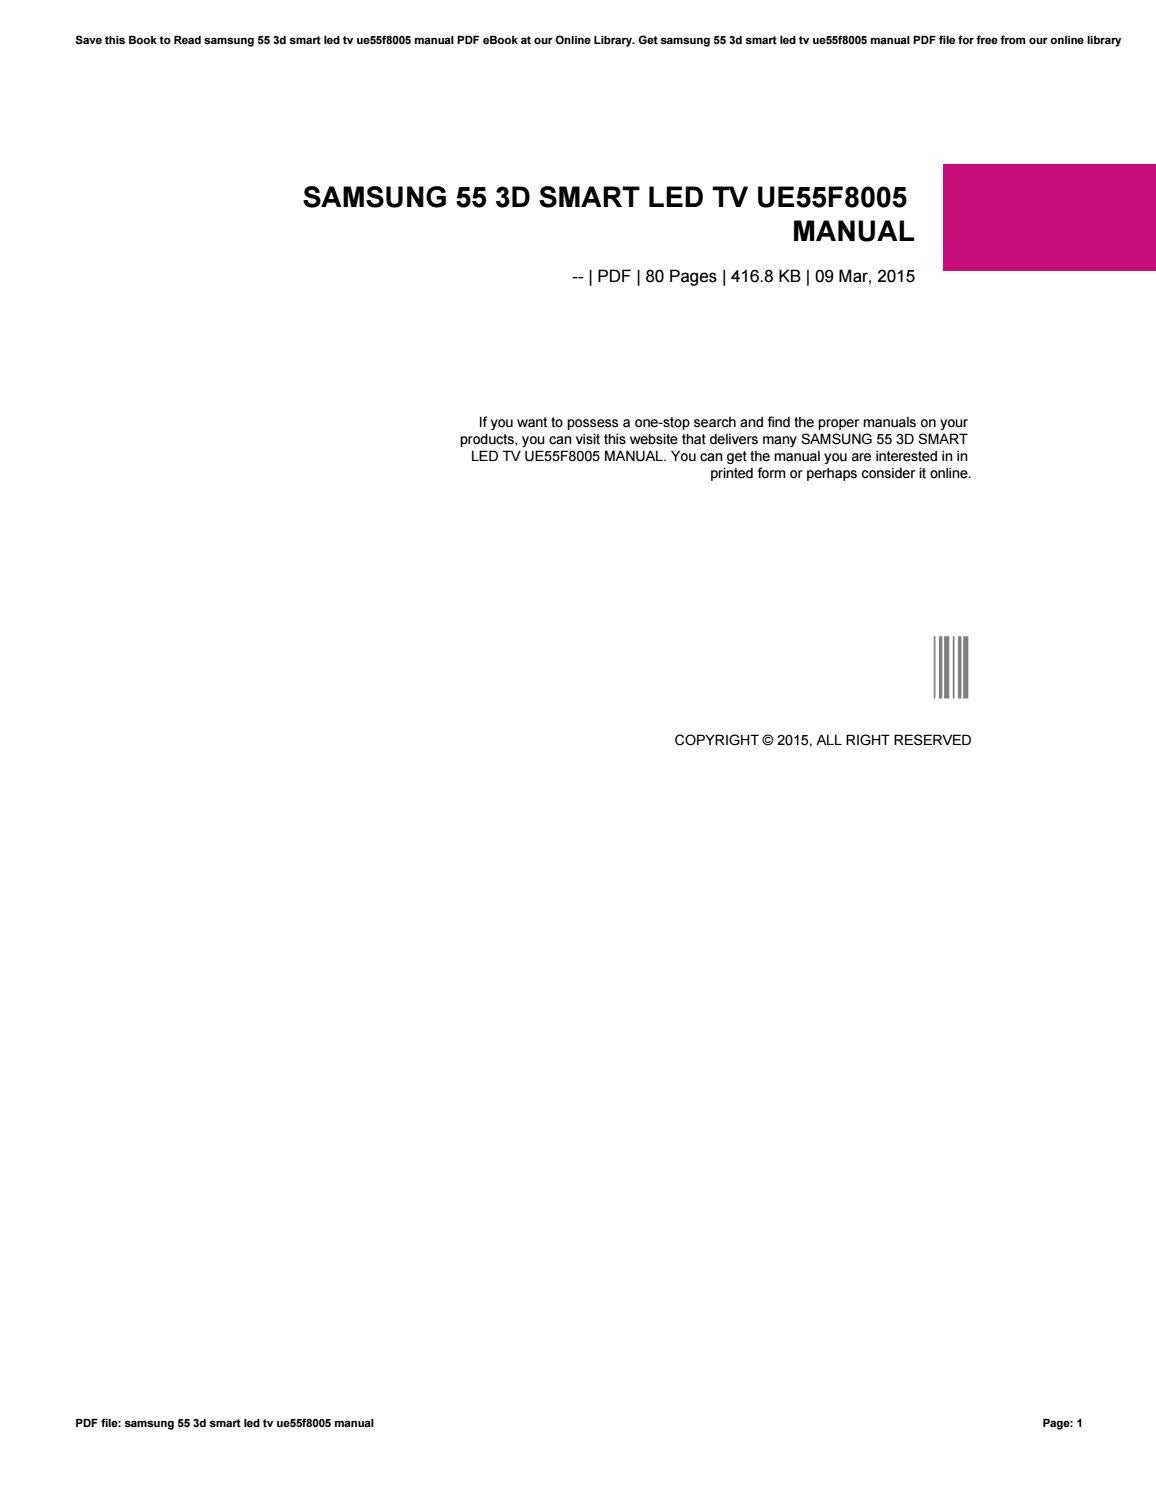 samsung manual un55d6000